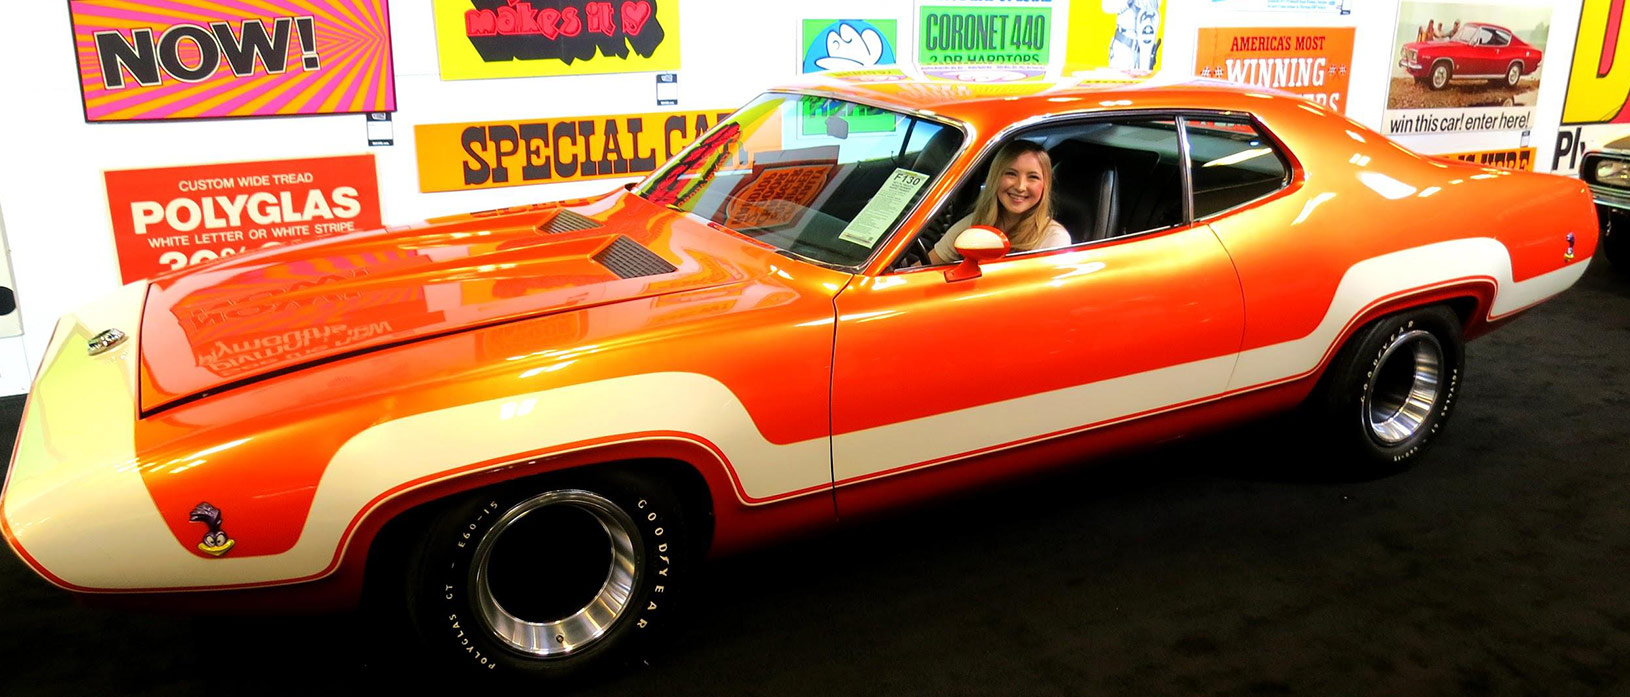 A young lady in an orange and white older vehicle at Steven Juliano's private collection.